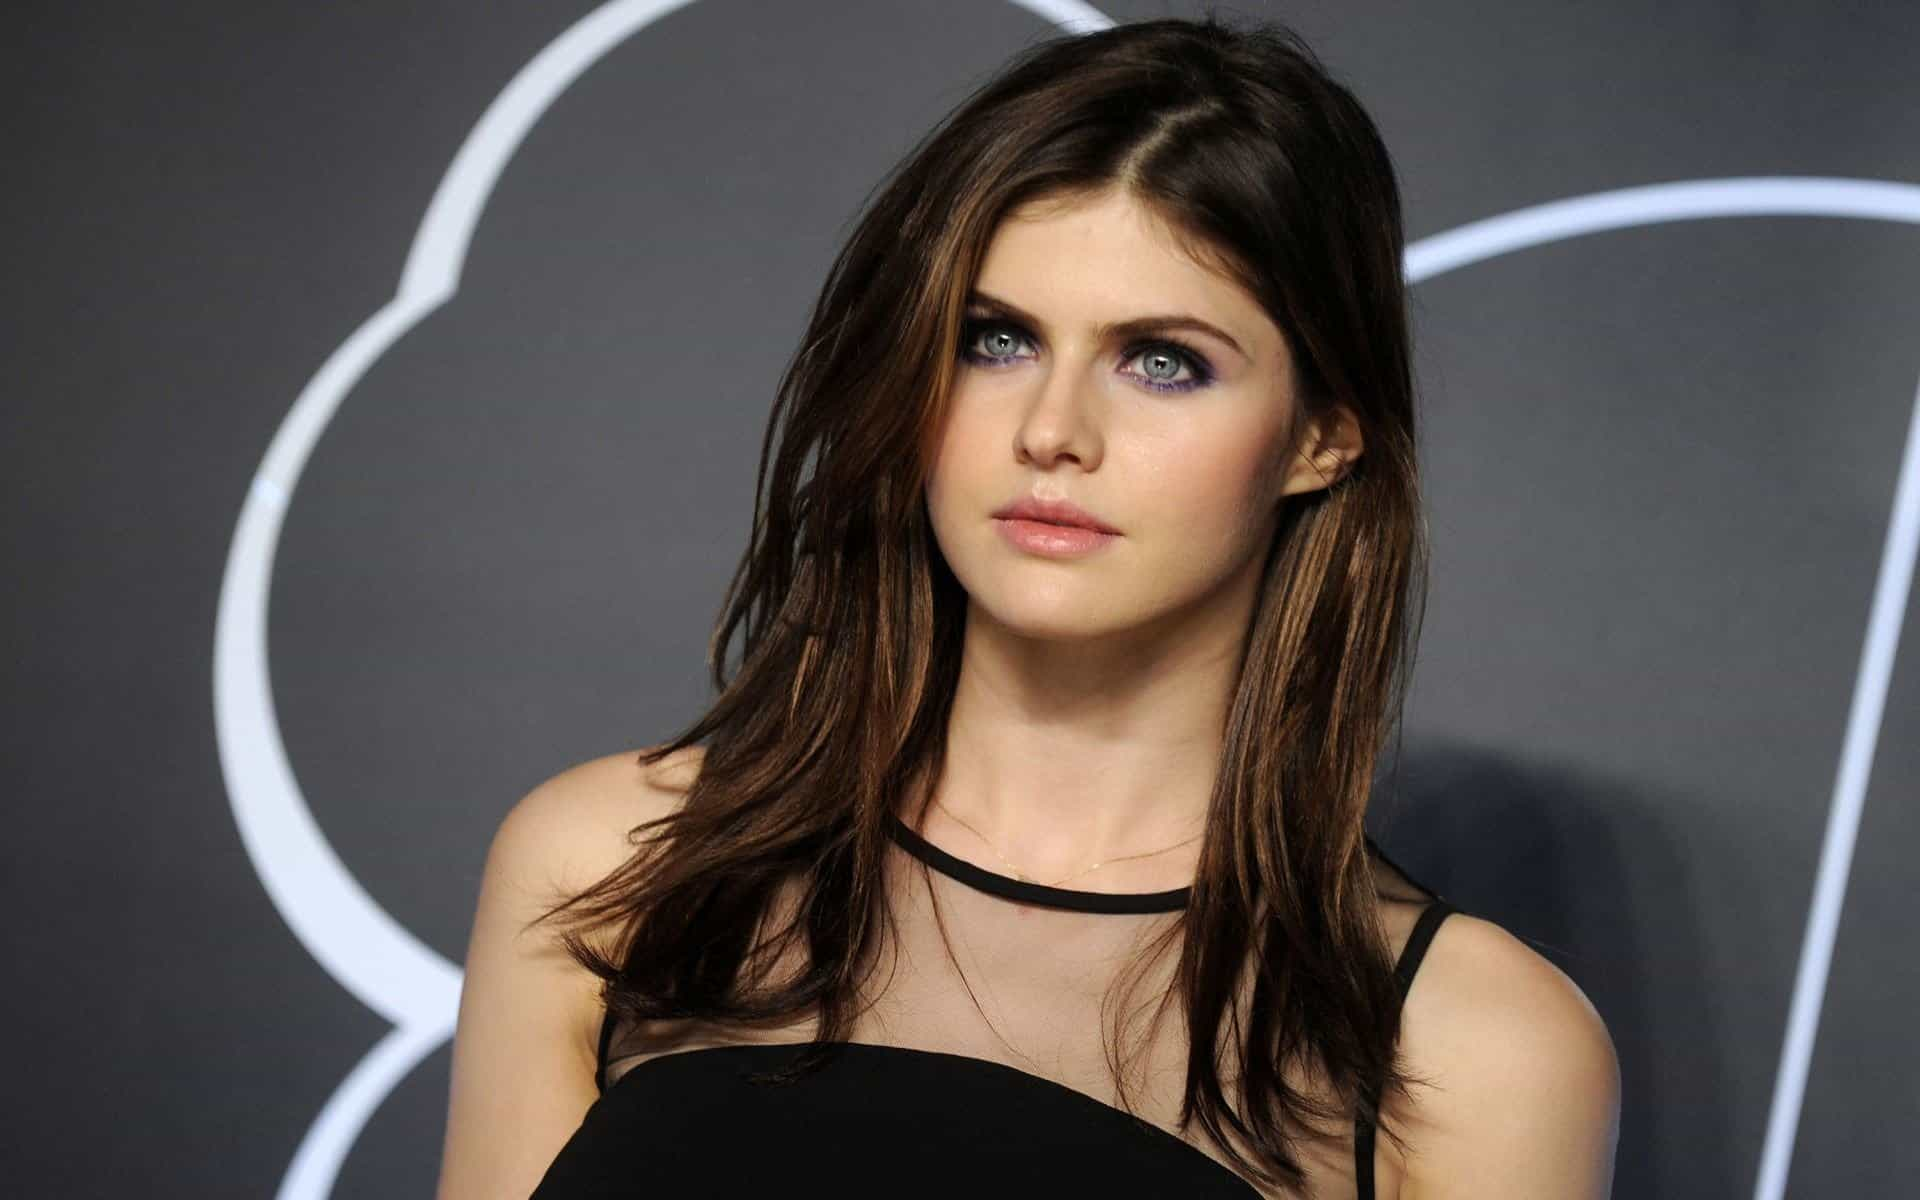 Fotos Alexandra Daddario nude (74 photo), Tits, Hot, Boobs, braless 2020